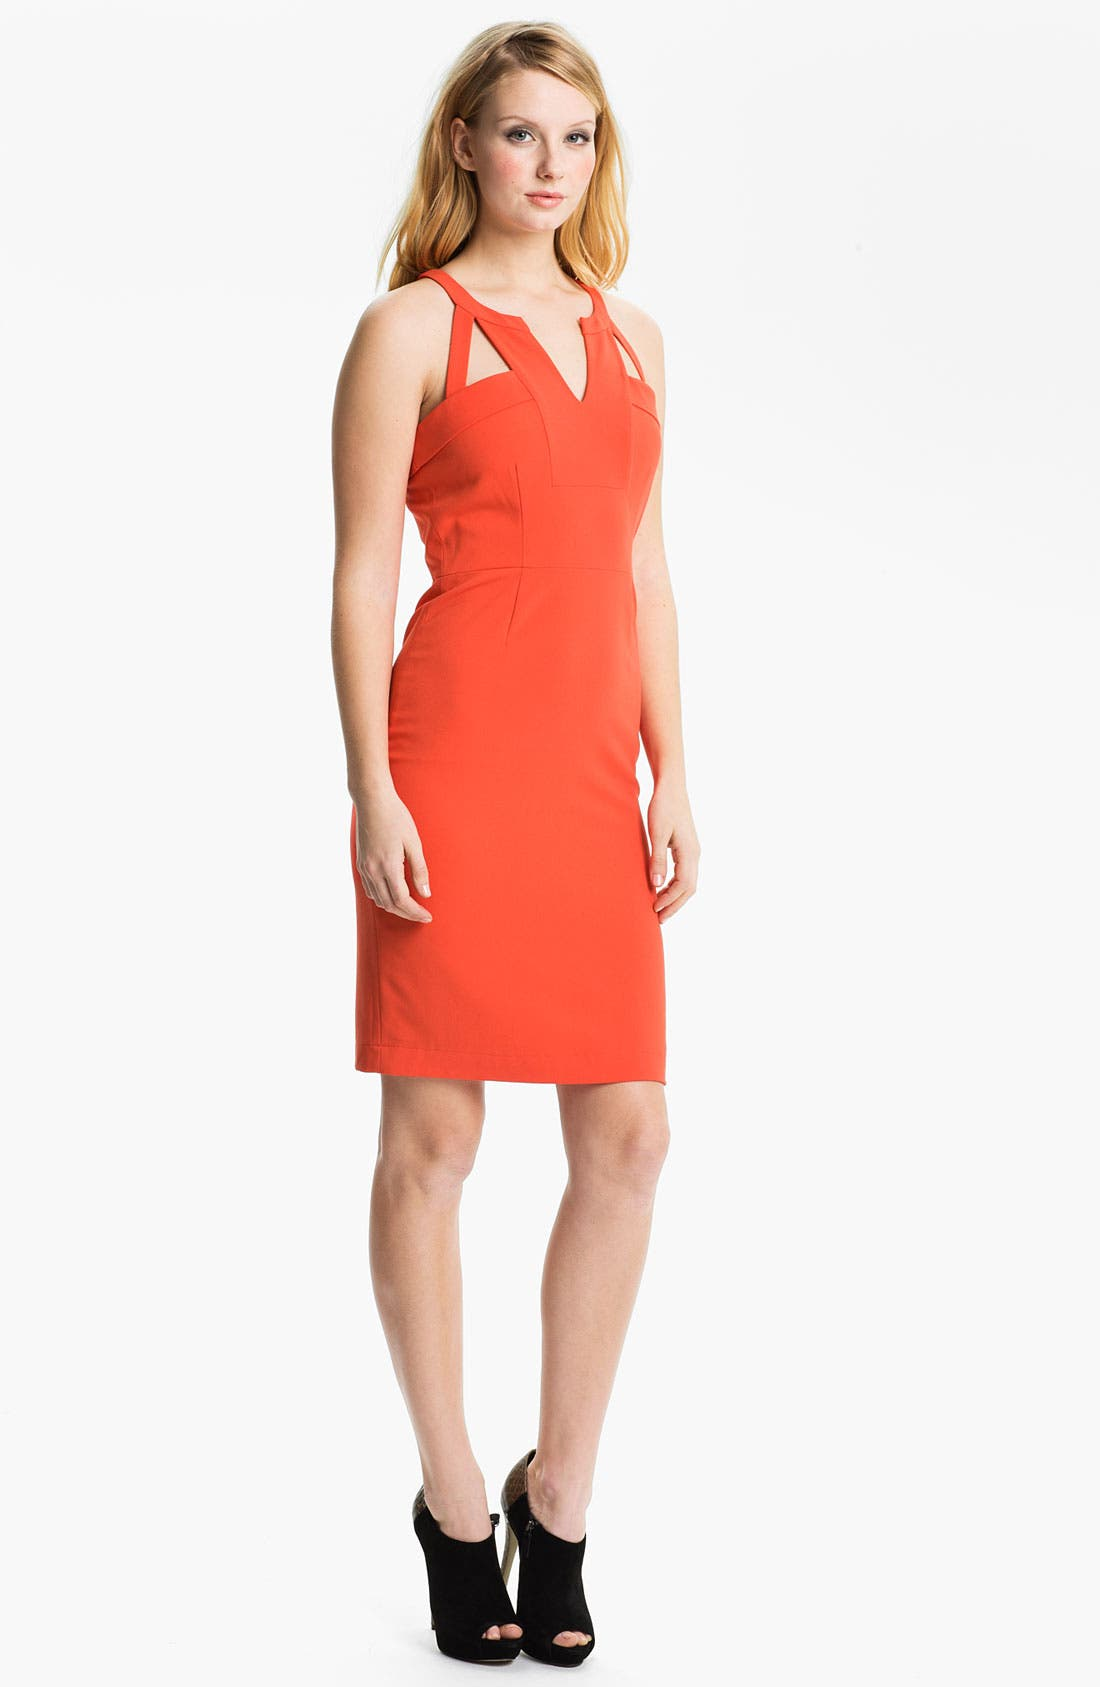 Alternate Image 1 Selected - BCBGMAXAZRIA Notched Neck Cutout Sheath Dress